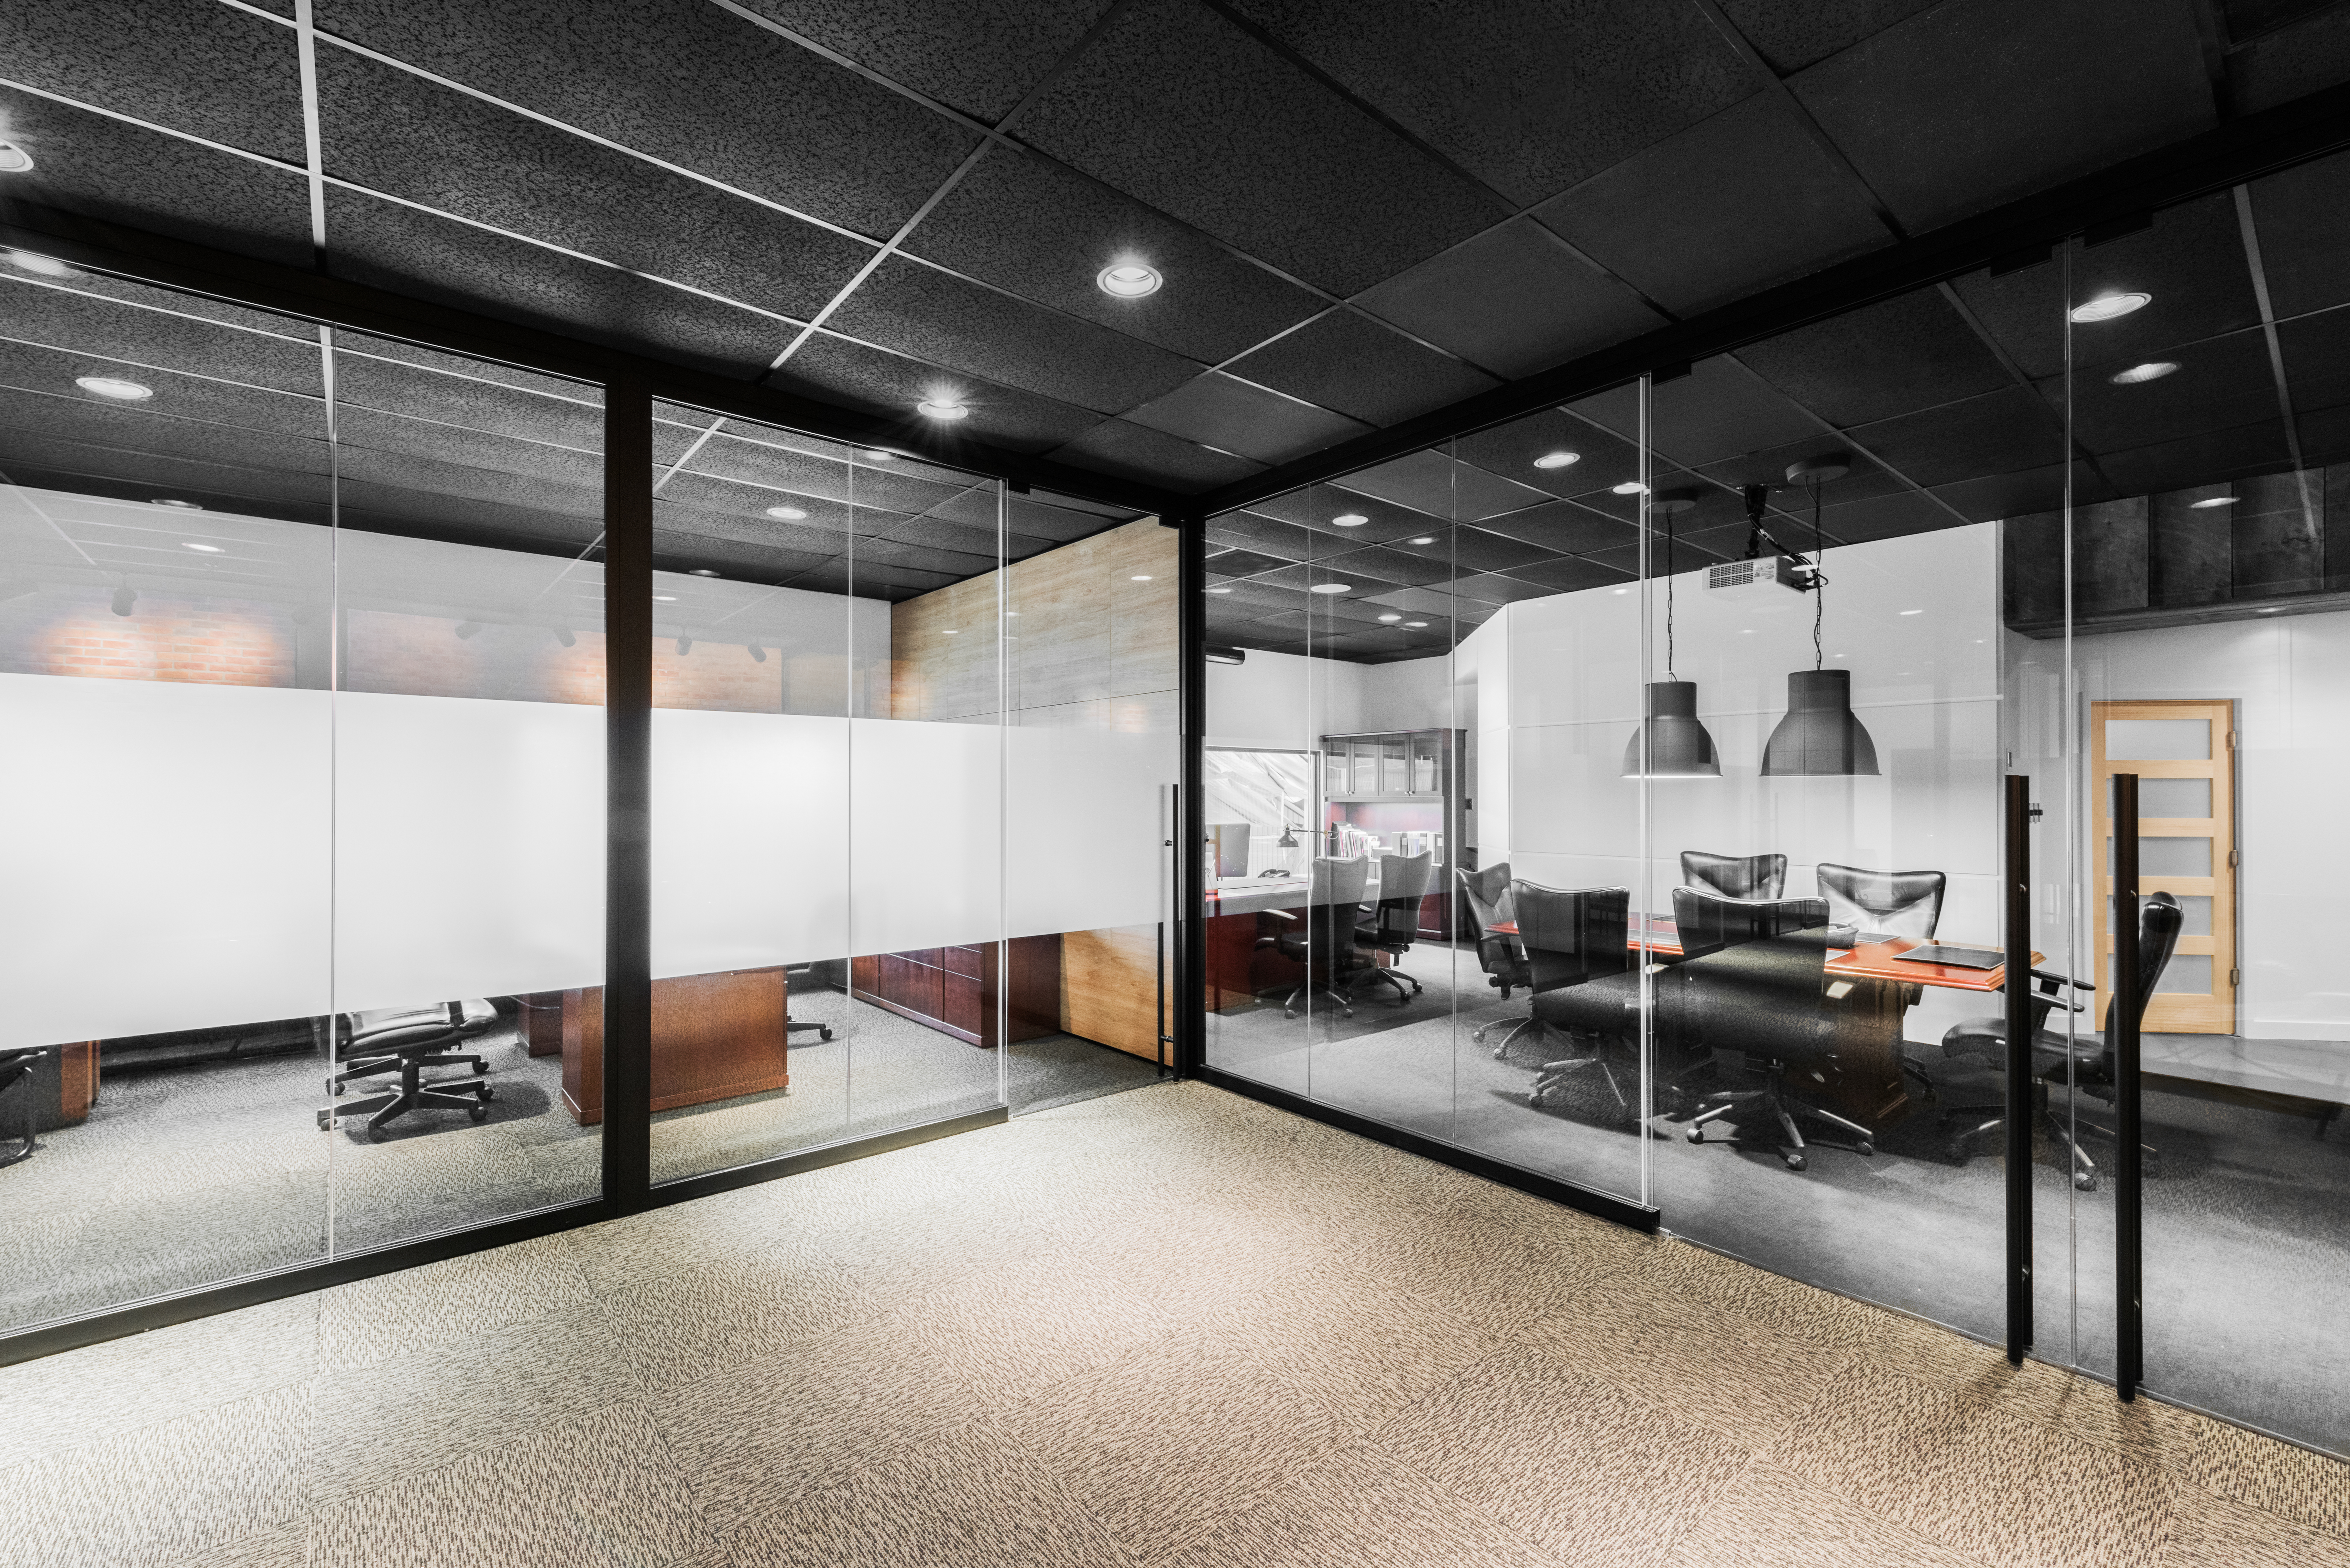 Meeting rooms built with demountable glass walls